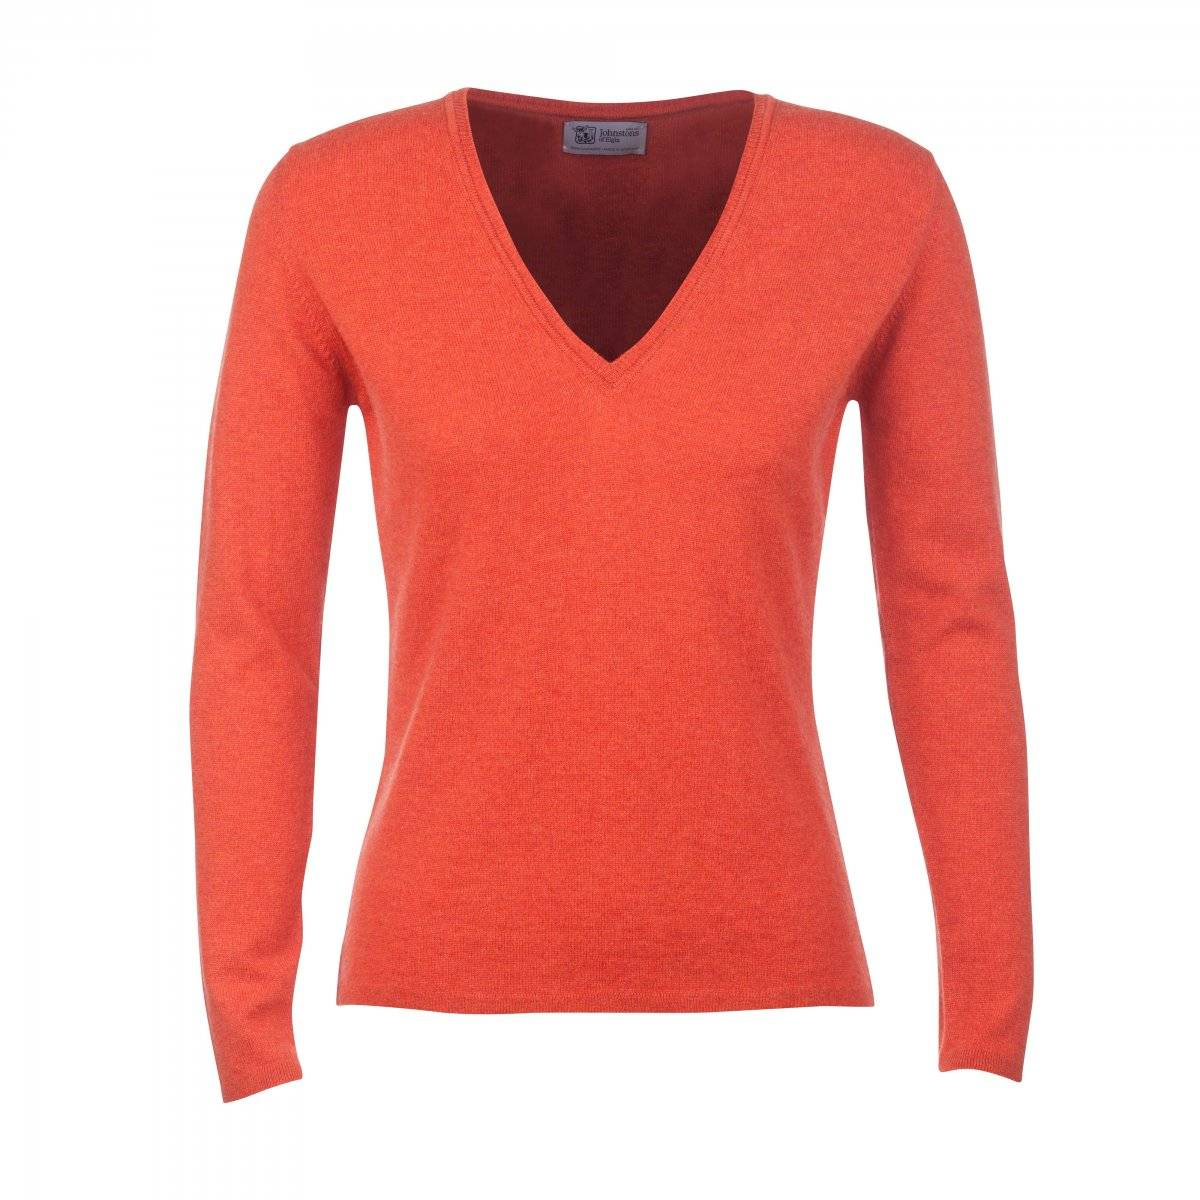 Lady 100% cashmere sweater